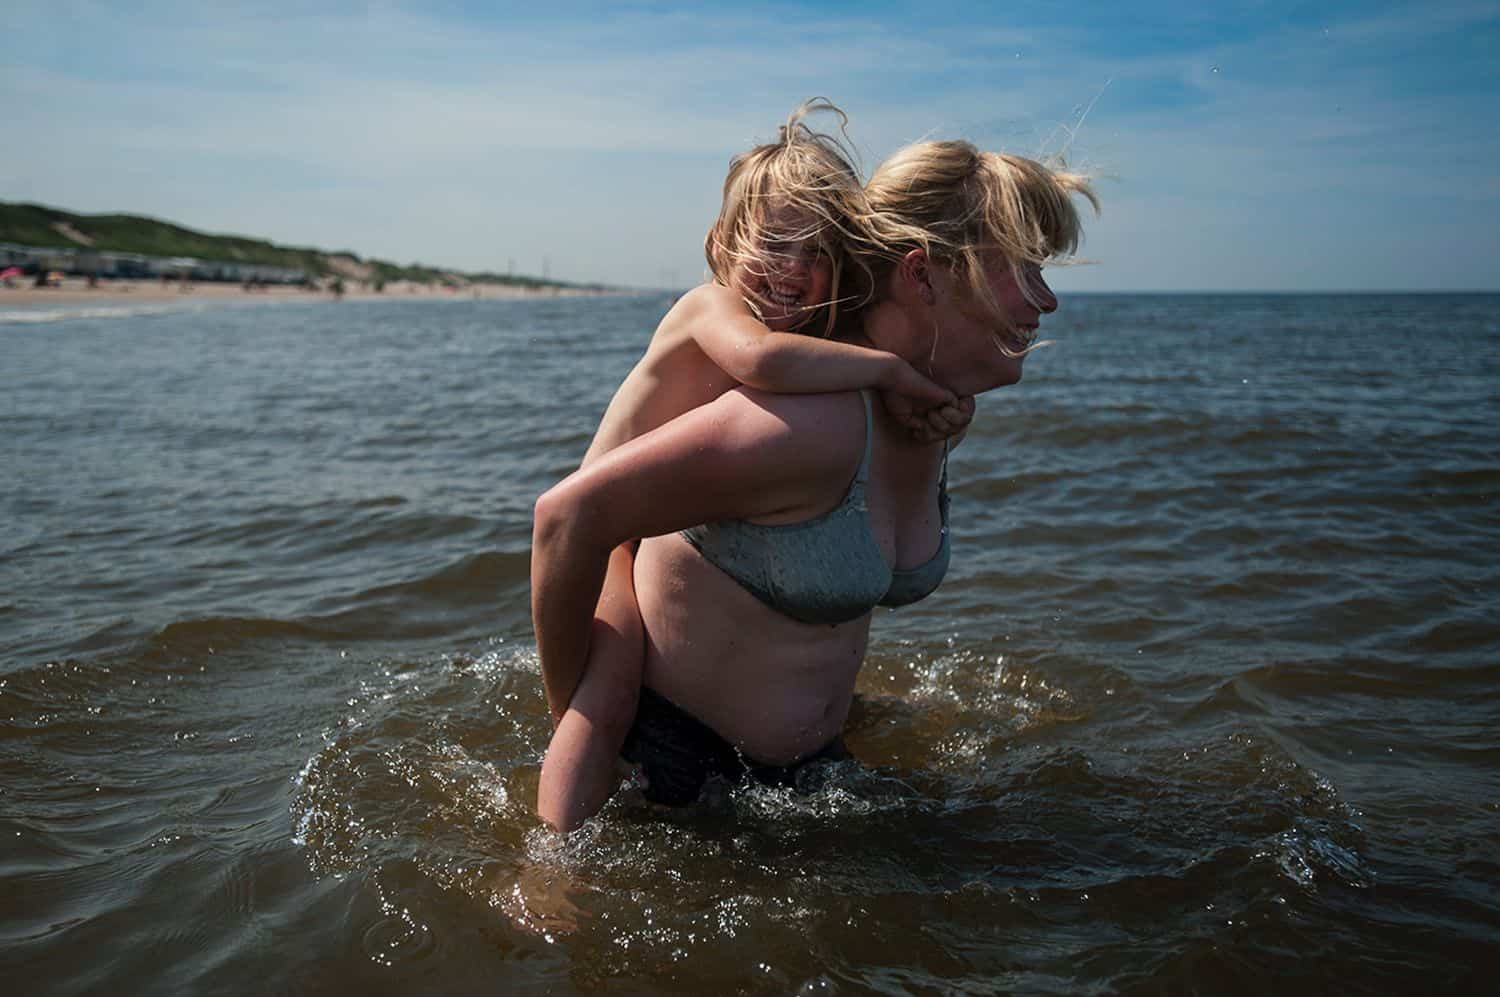 A mom carries her young child on her back through waist-deep lake water